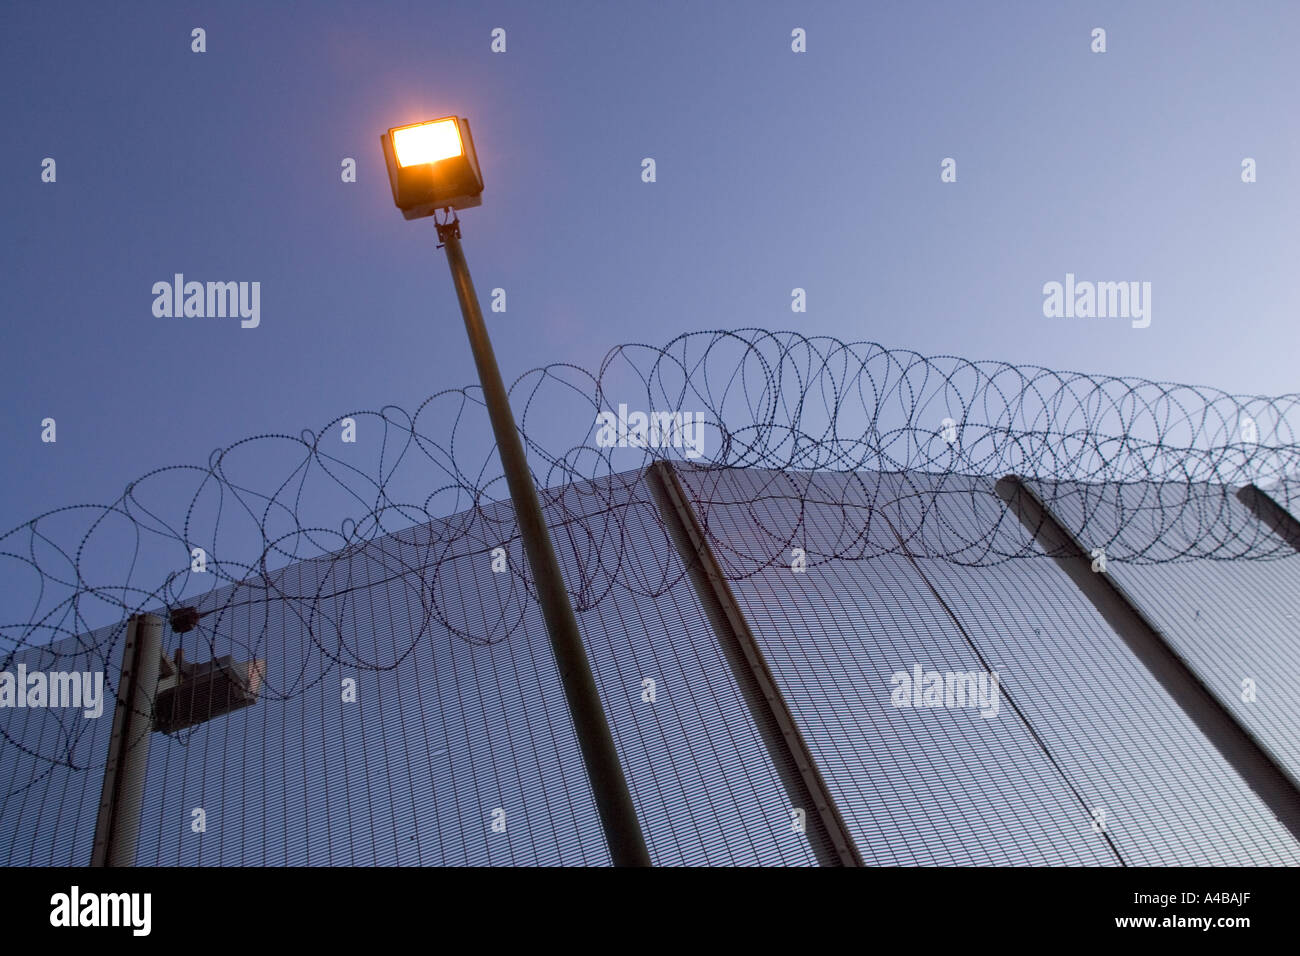 Razor wire and security lighting wormwood scrubs prison london uk razor wire and security lighting wormwood scrubs prison london uk aloadofball Choice Image